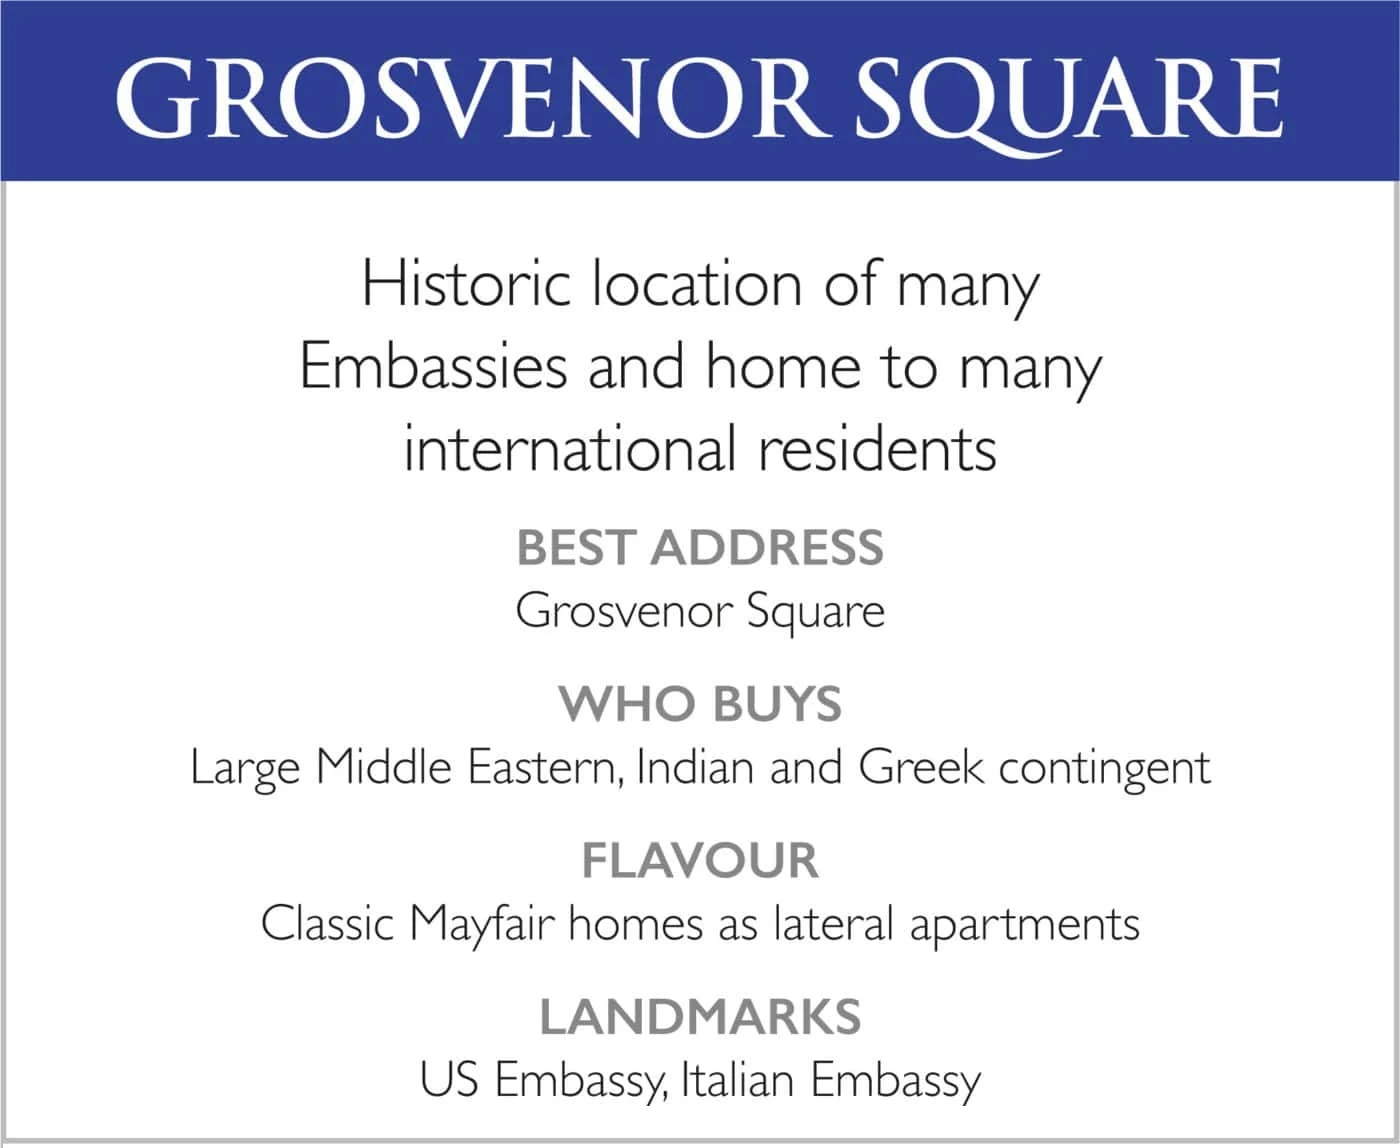 Grosvenor Square List of Features